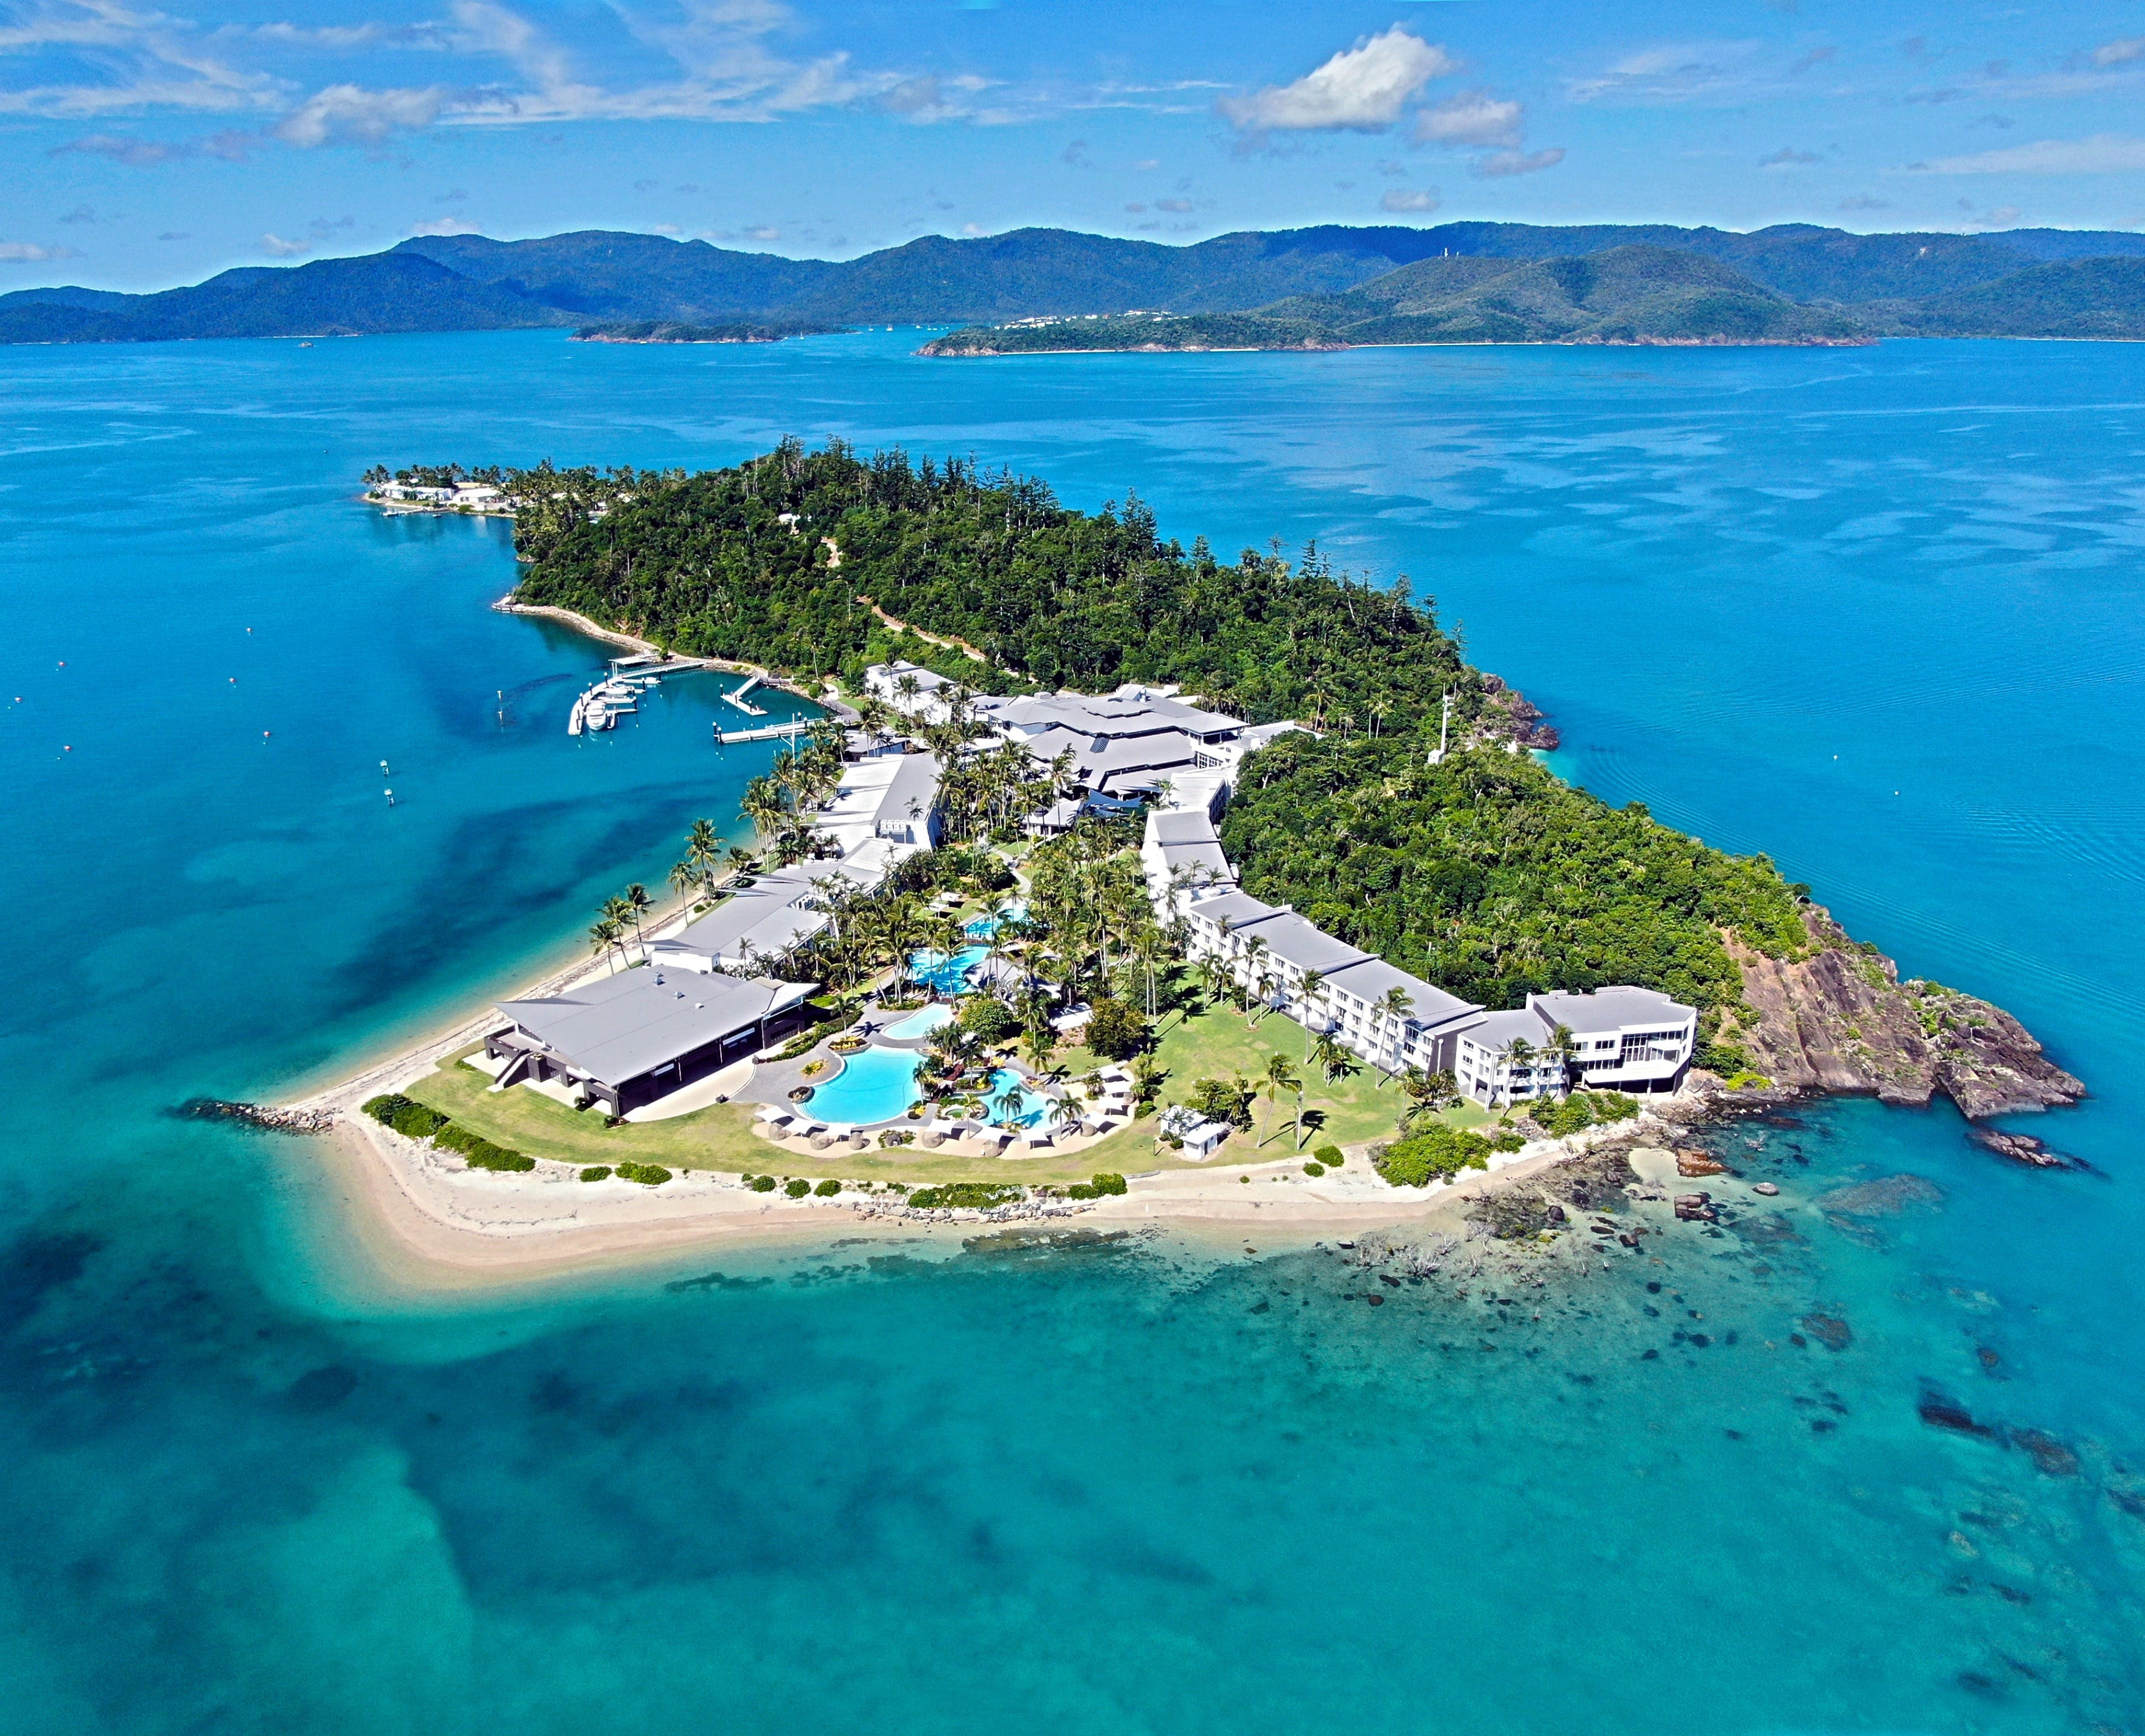 Daydream Island Resort and Living Reef - C Tourism